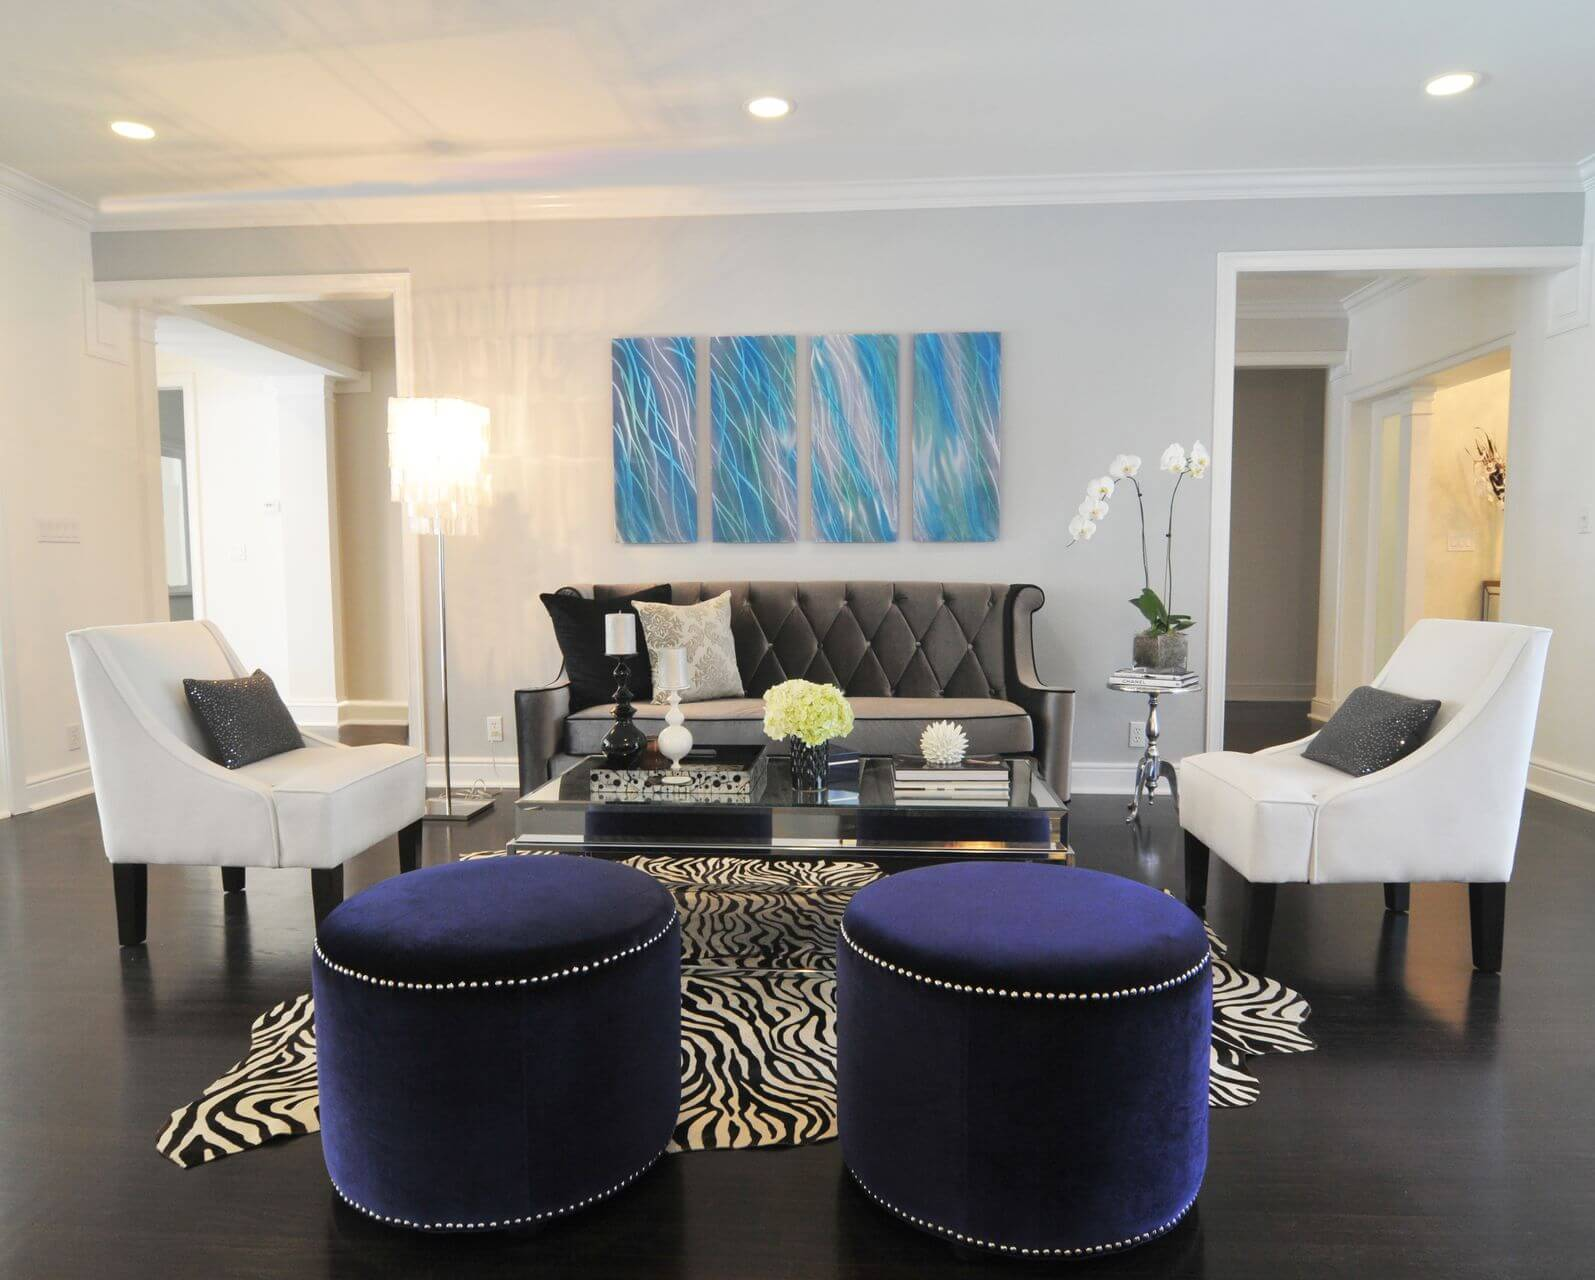 Small contemporary living room with dark floor on which is an abstract-shaped zebra print rug which is in the center of the room that contains a grey sofa, two white chairs and a glass coffee table